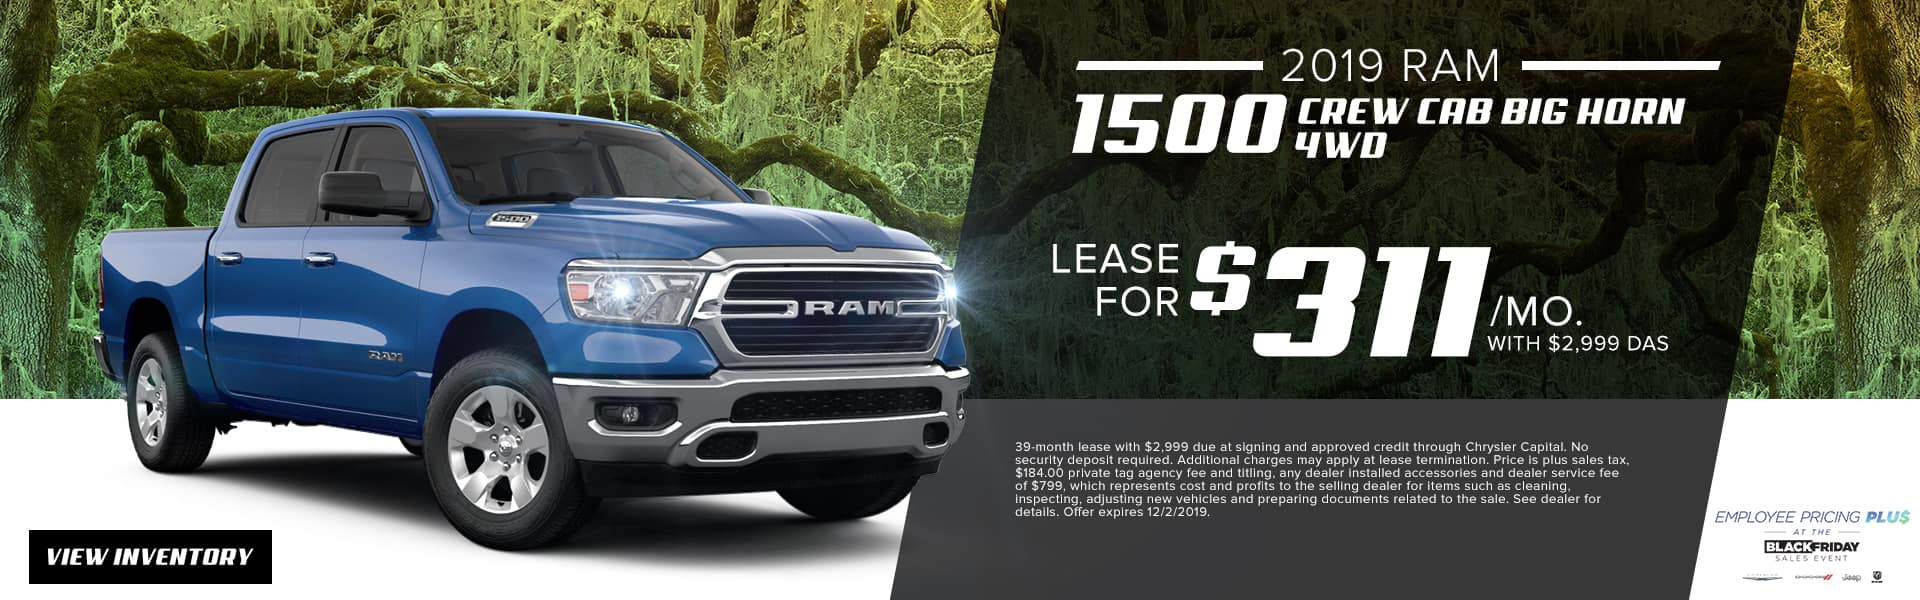 2019 RAM 1500 Crew Cab Big Horn 4WD | Lease For $311 Per Month With $2,999 Due At Signing